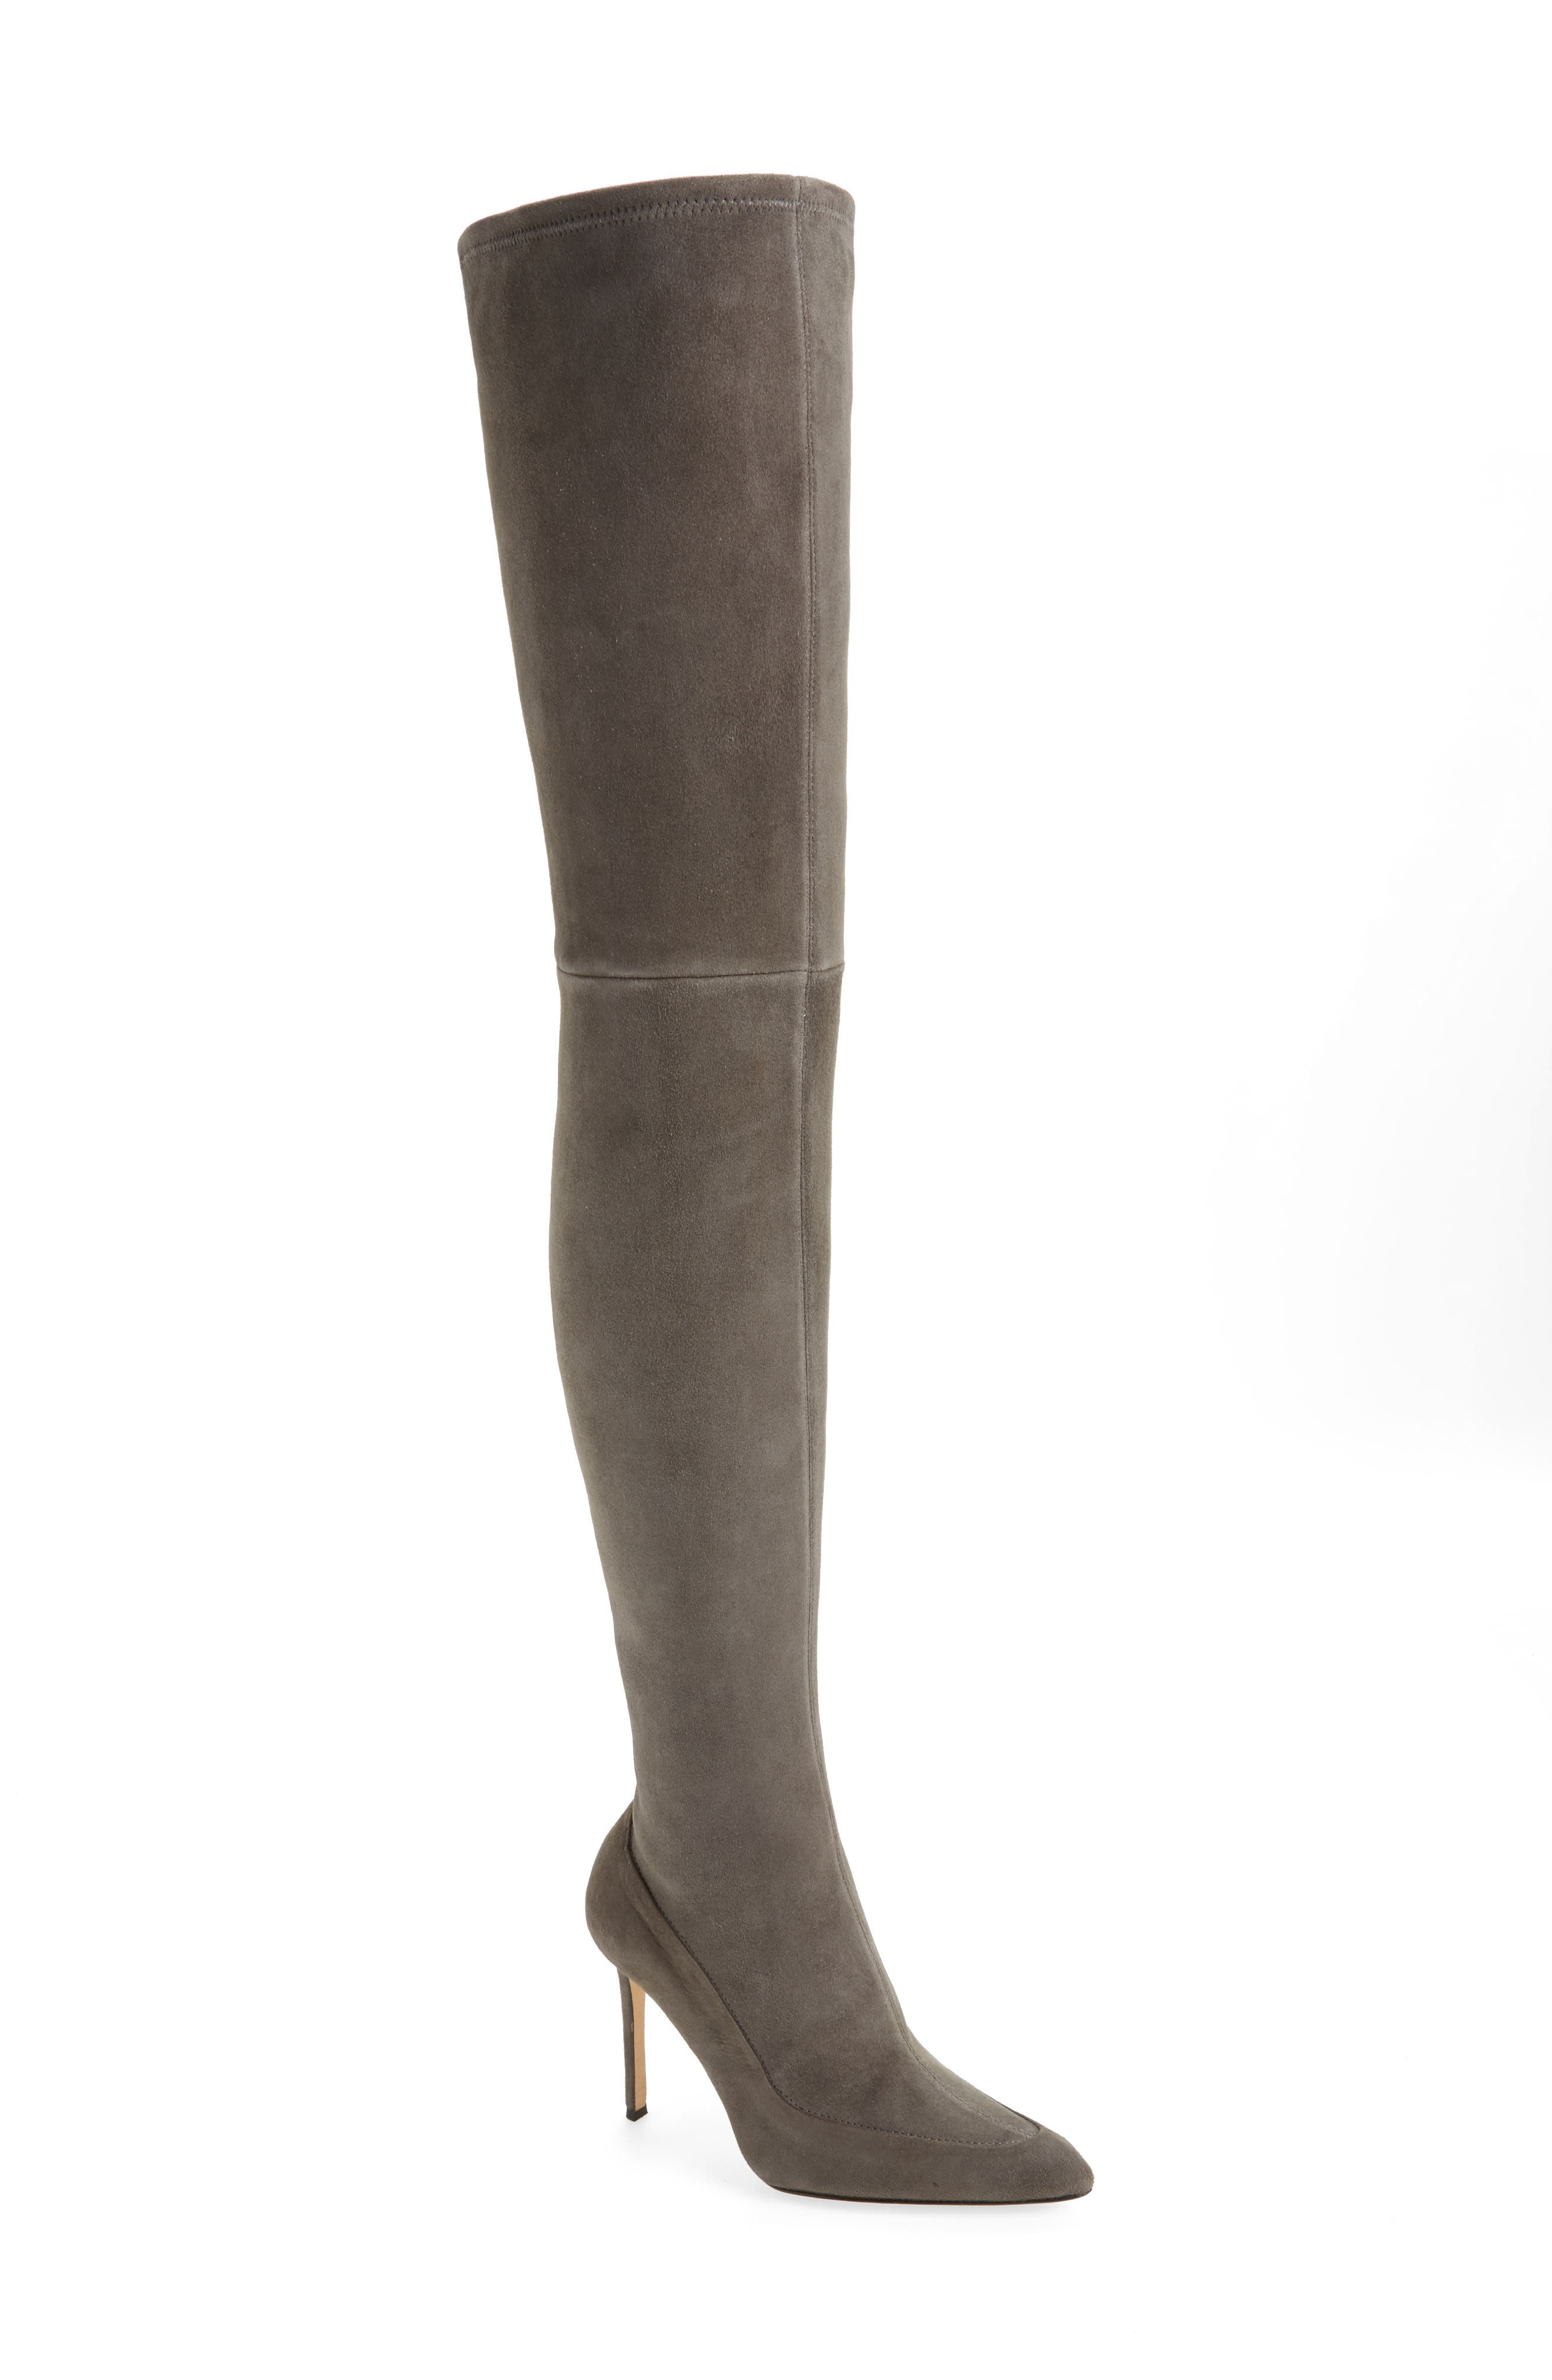 Cassie Thigh High Boot,                             Main thumbnail 1, color,                             Anthracite Suede